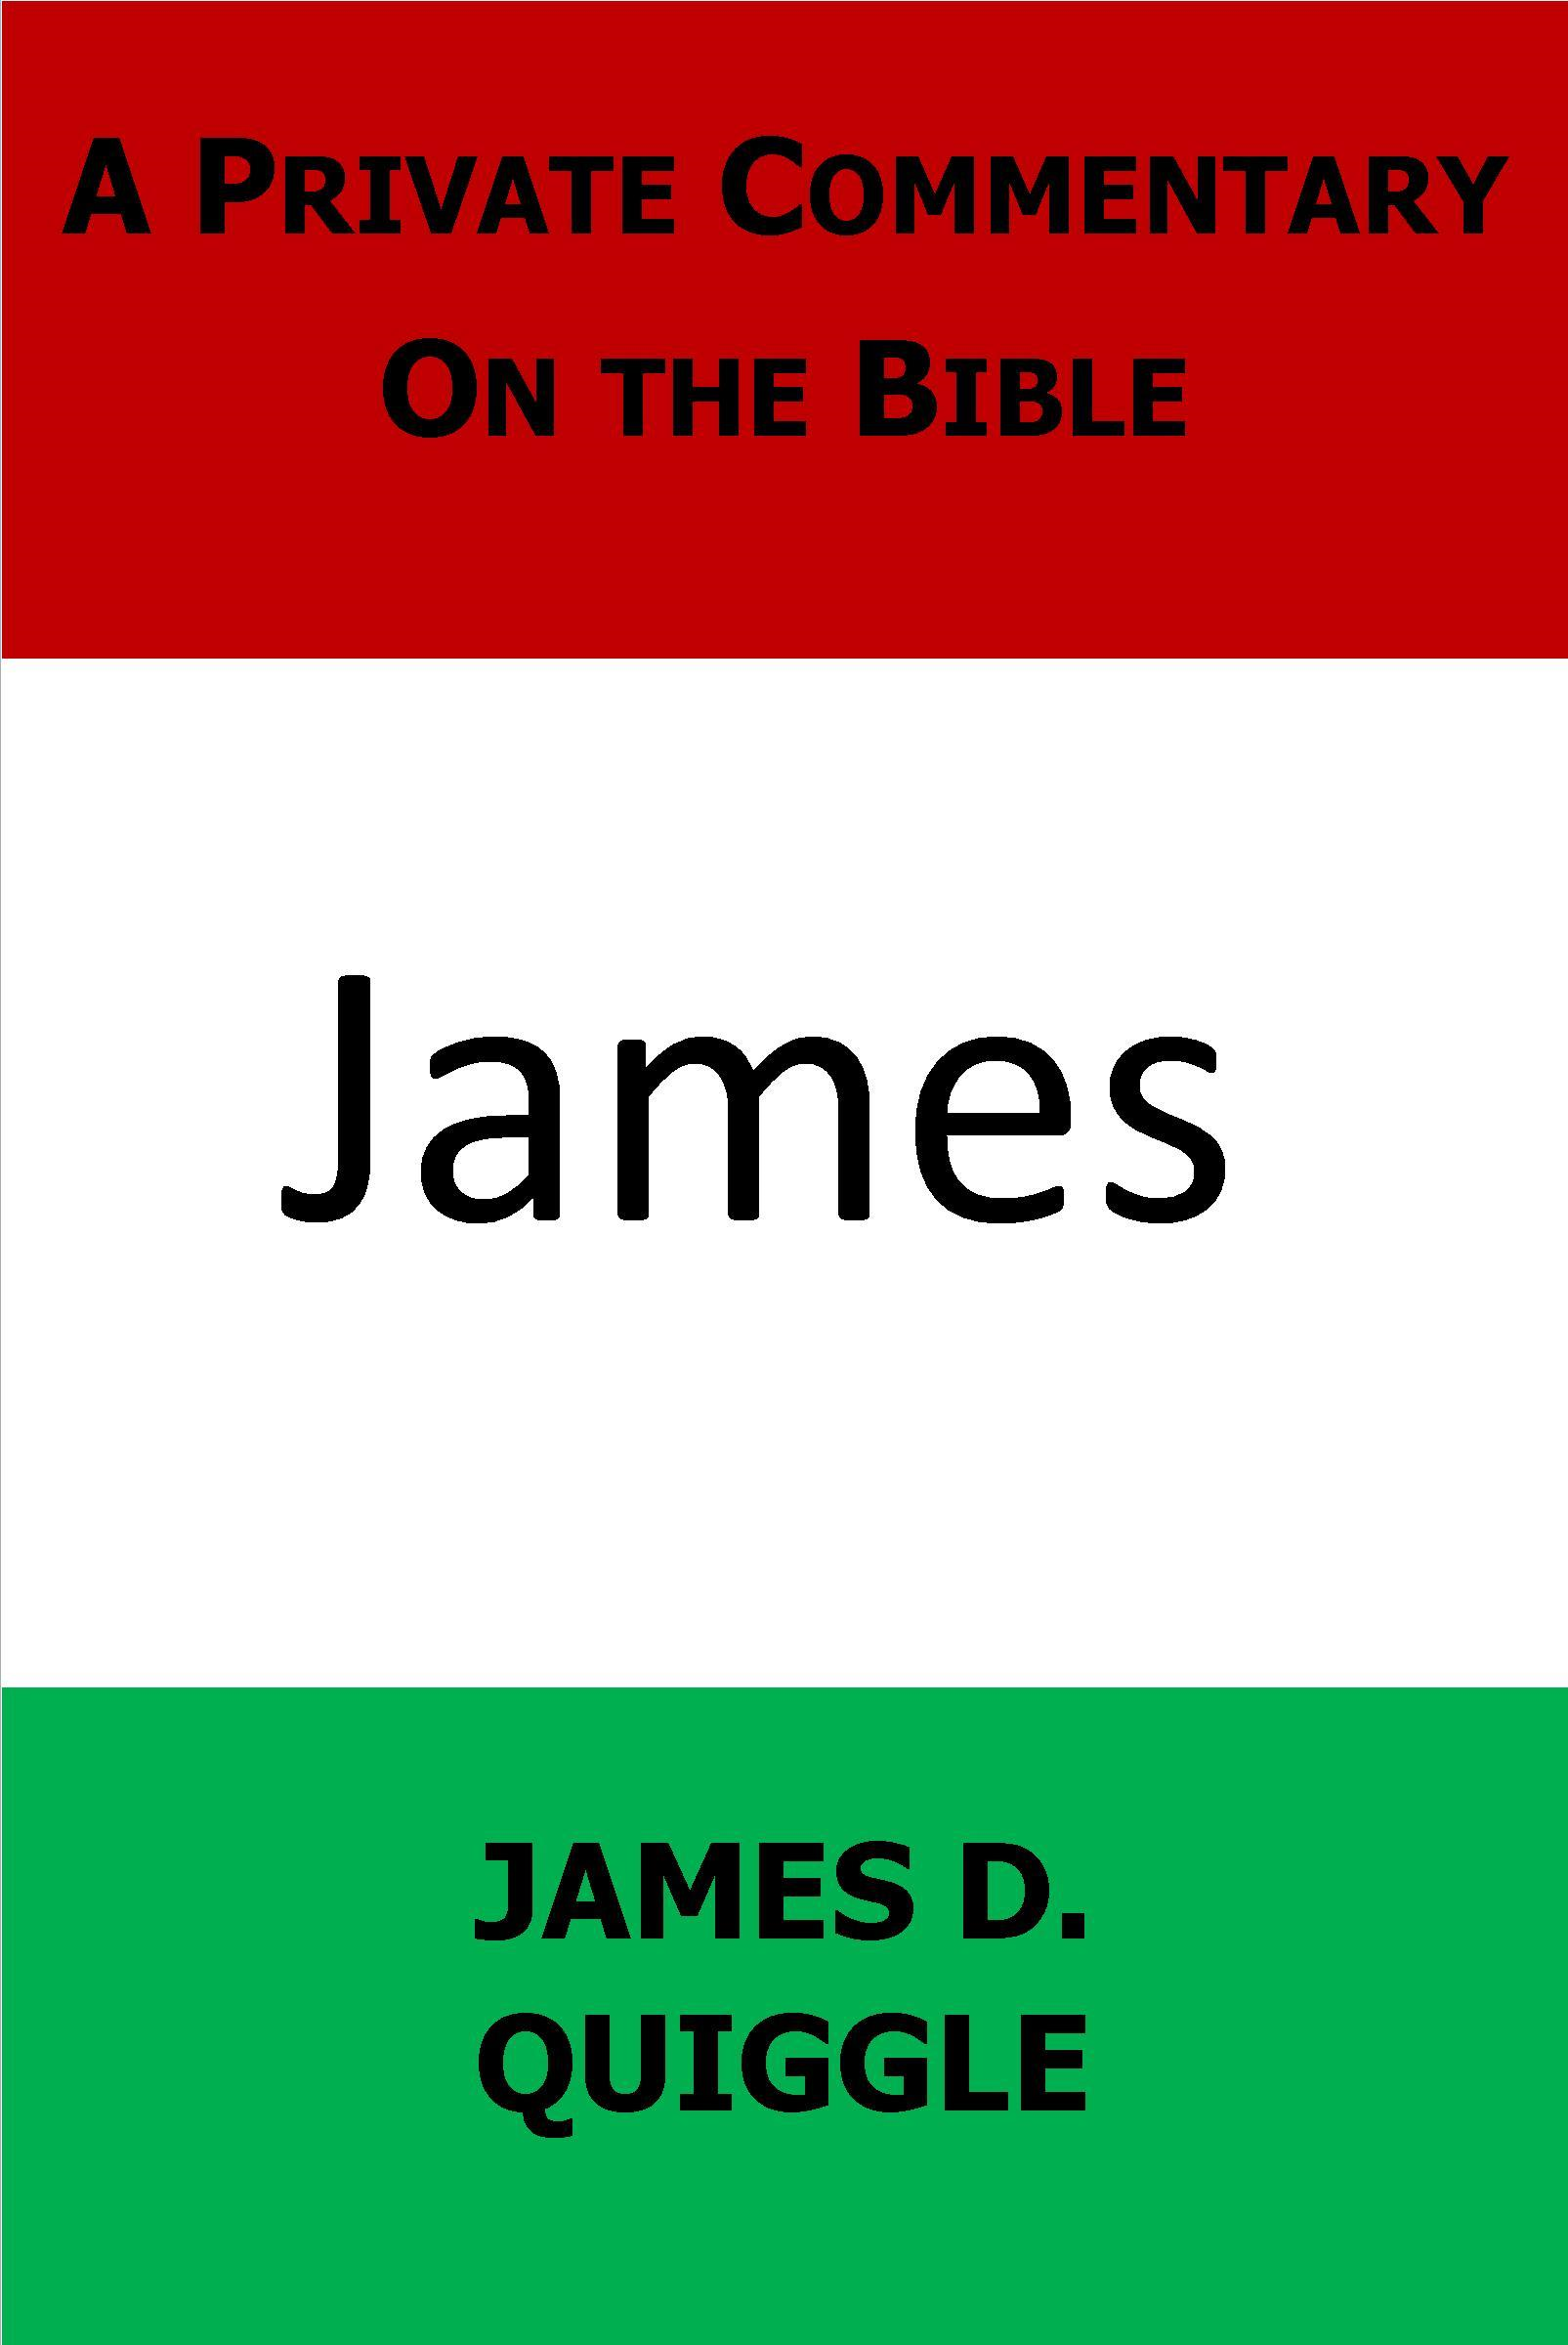 A Private Commentary on the Bible: James